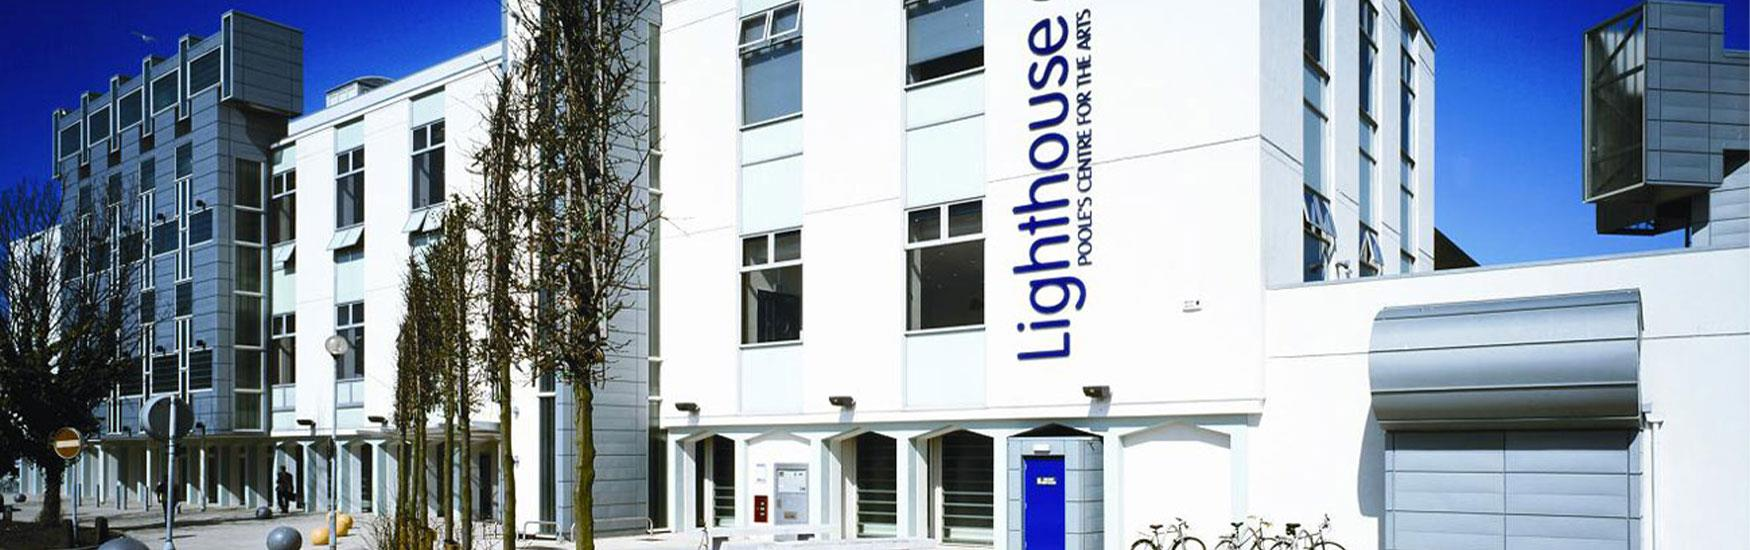 Exterior shot of the Poole lighthouse theatre illuminated by the sun